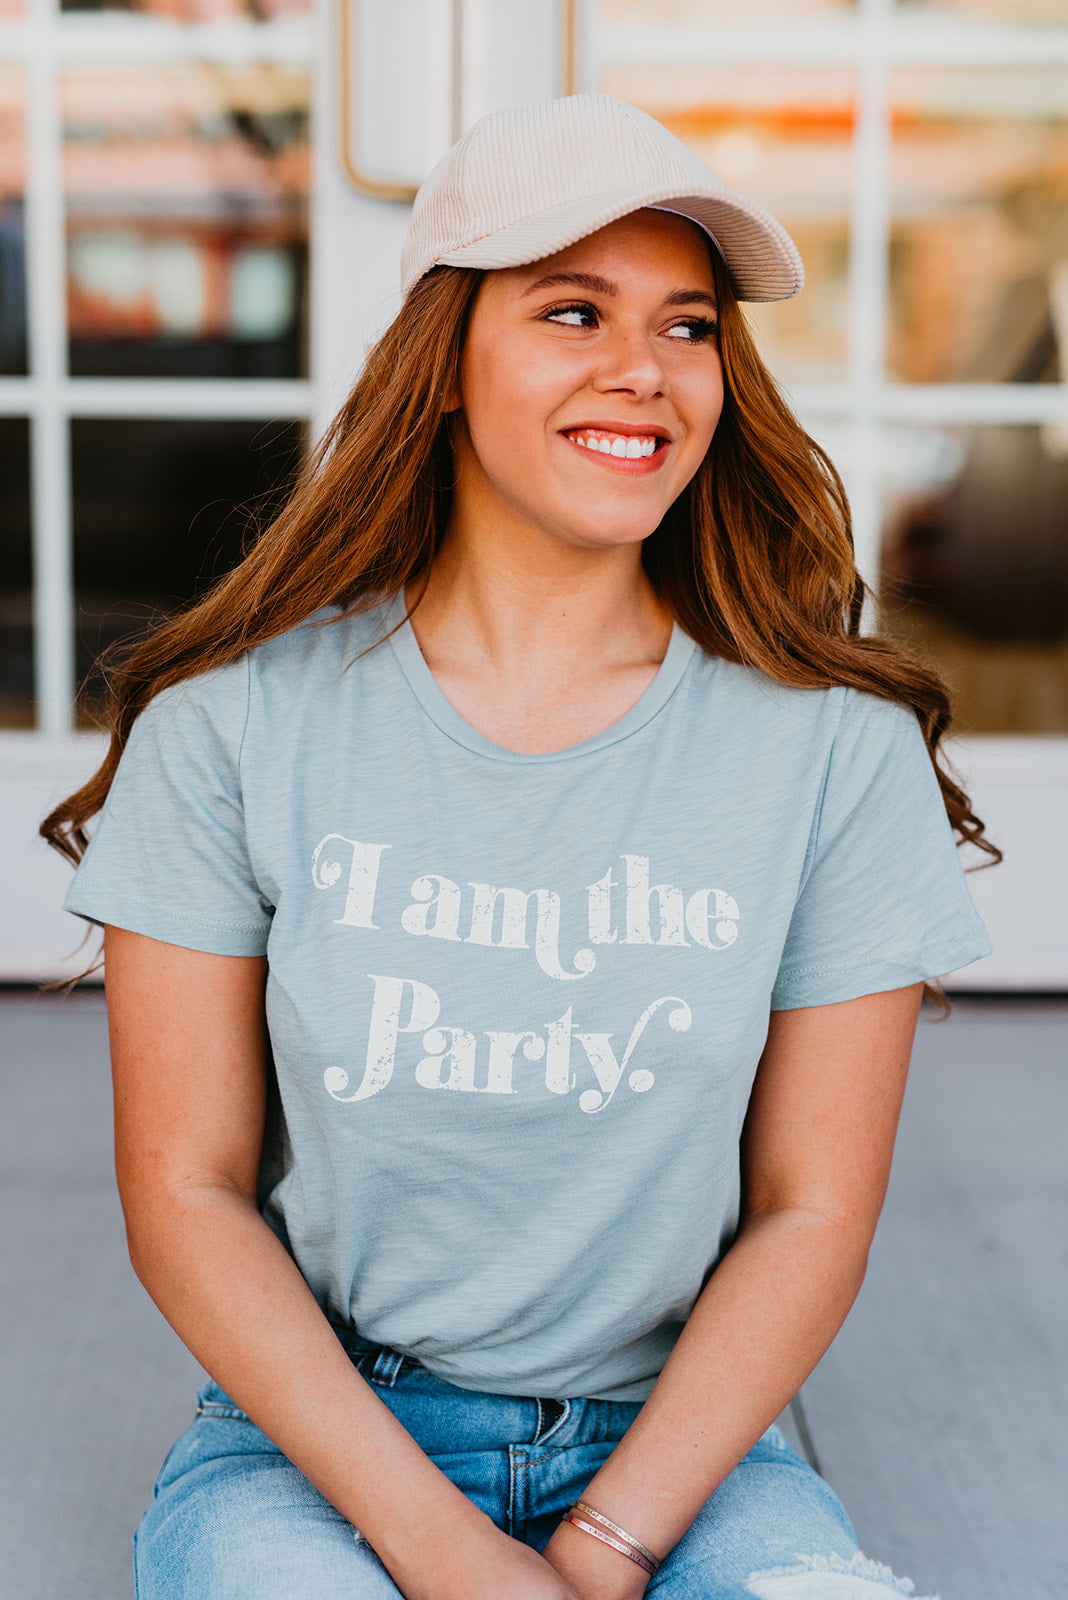 THE I AM THE PARTY TEE IN TEAL